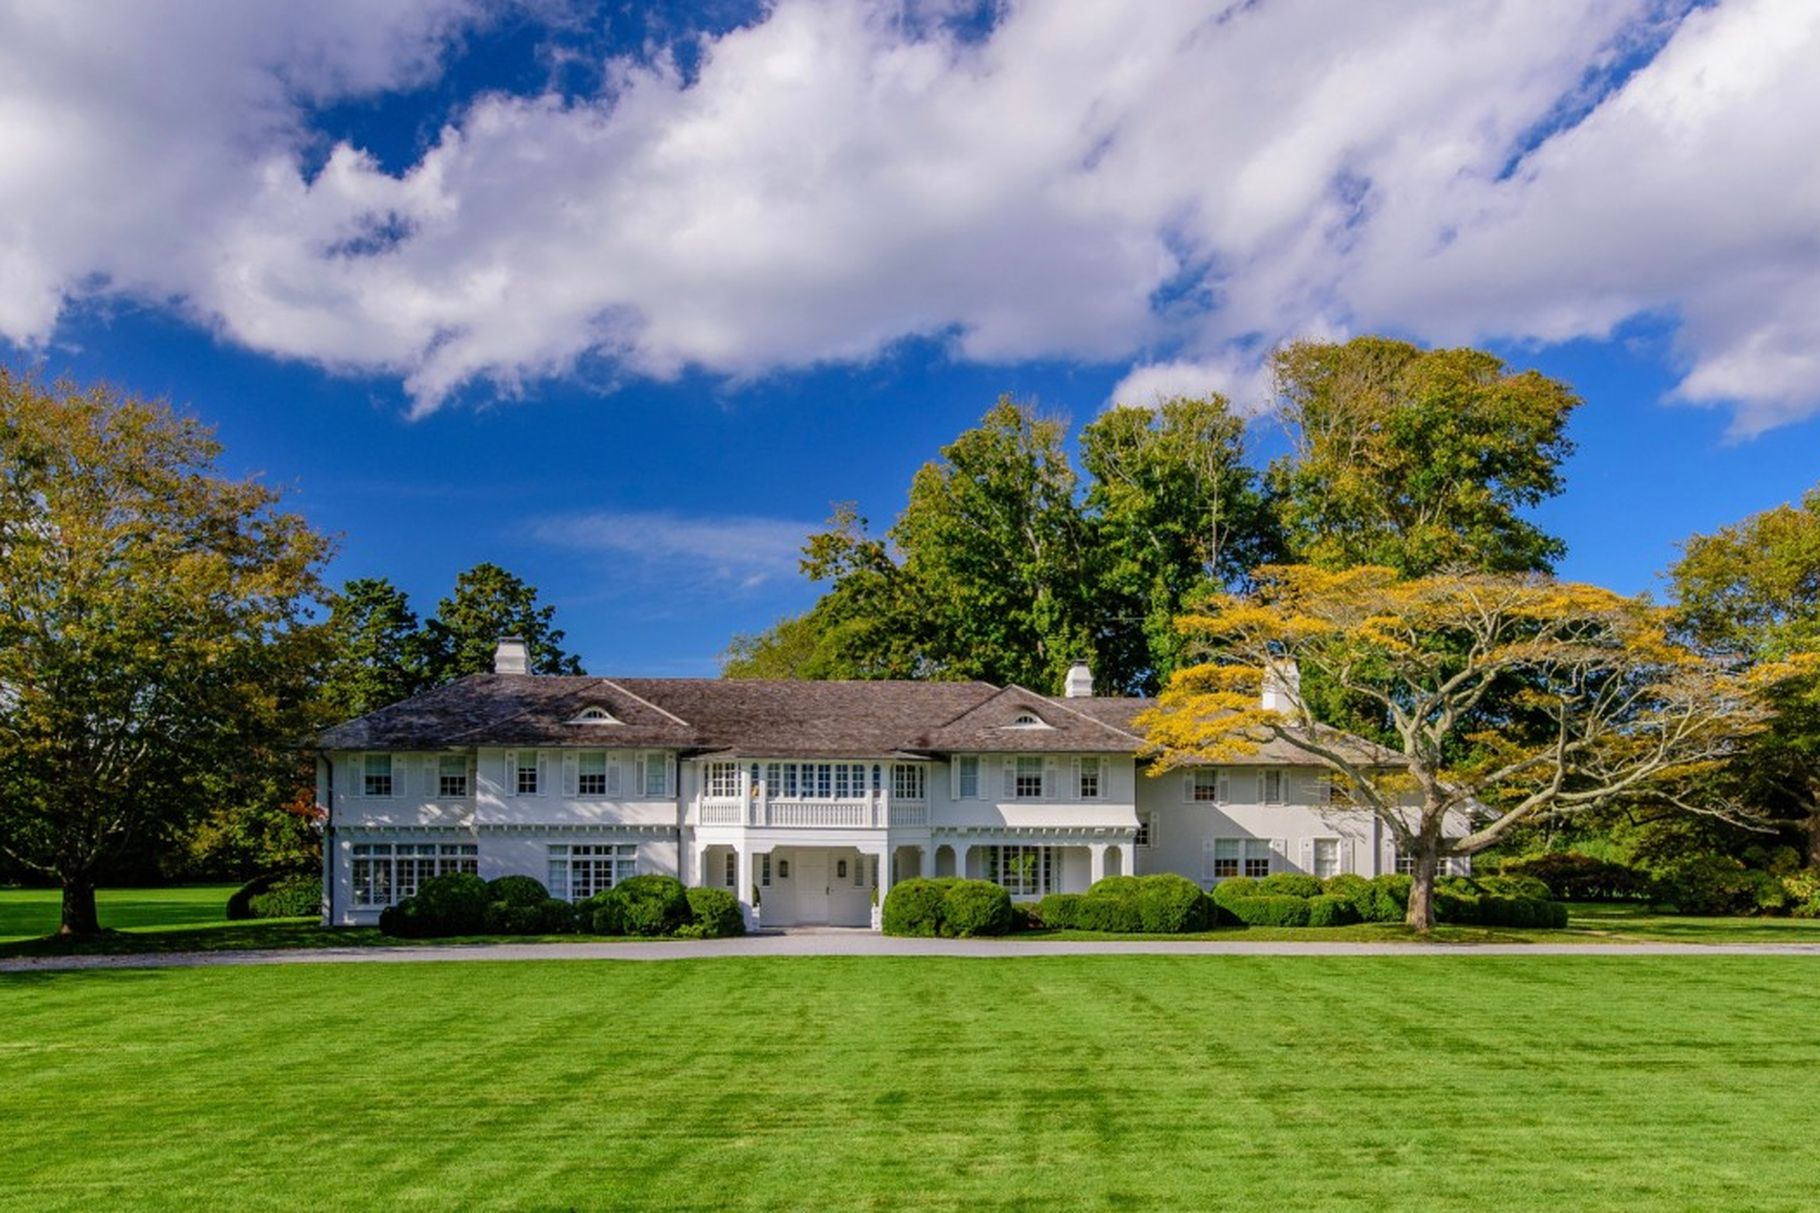 Featured Listing: Lasata, Jackie Kennedy Onassis' Former Summer Estate, Drops Asking Price to $35 Million